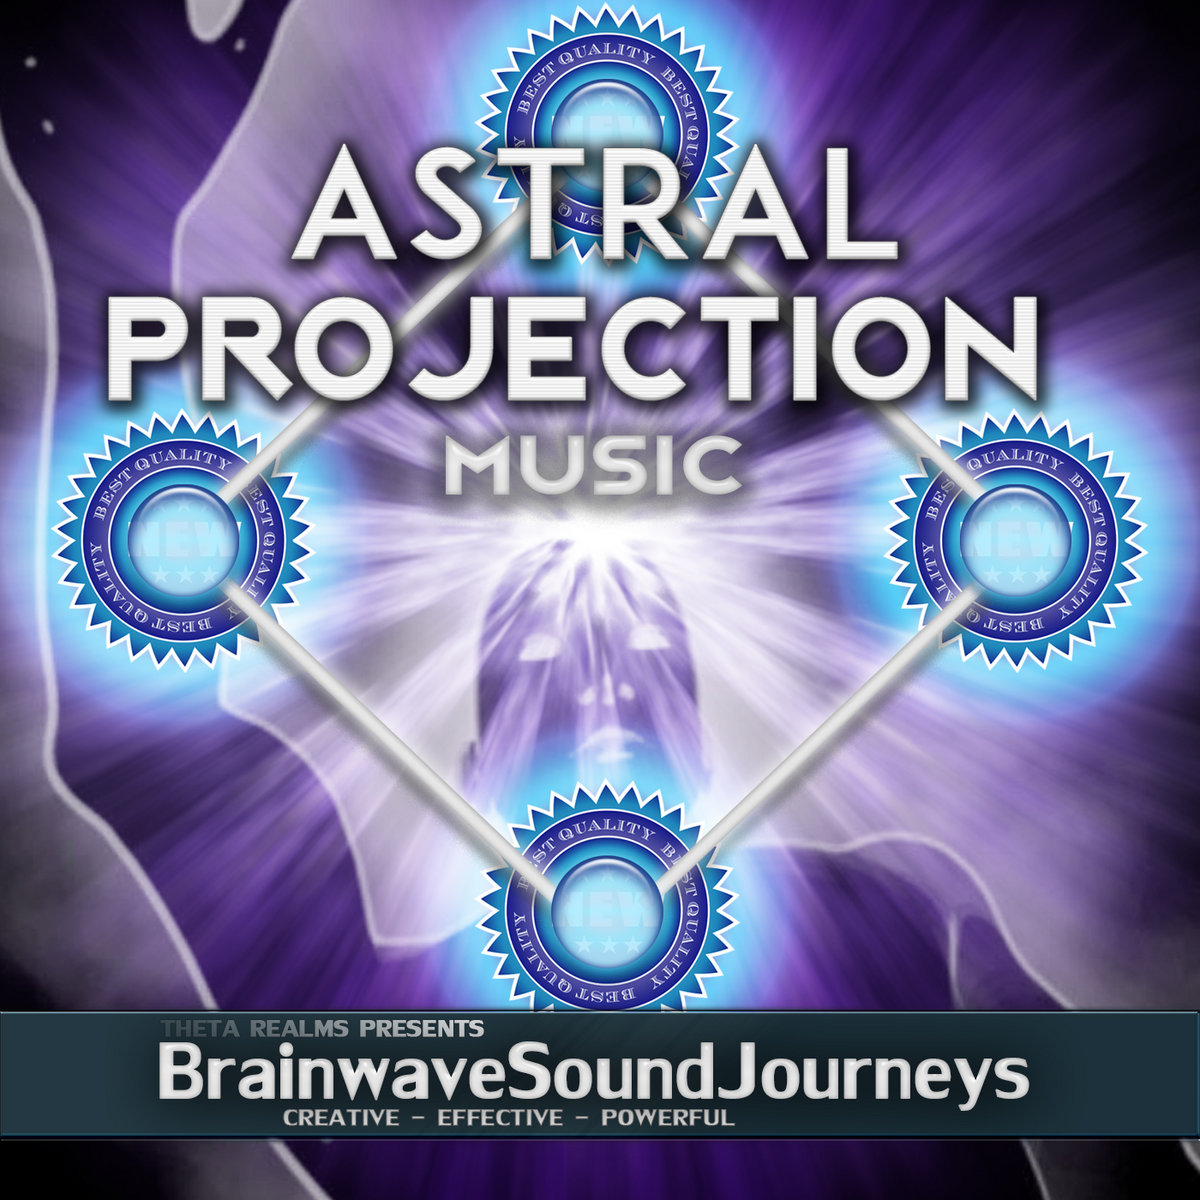 ASTRAL PROJECTION MUSIC For DEEP & POWERFUL Out of Body Meditation